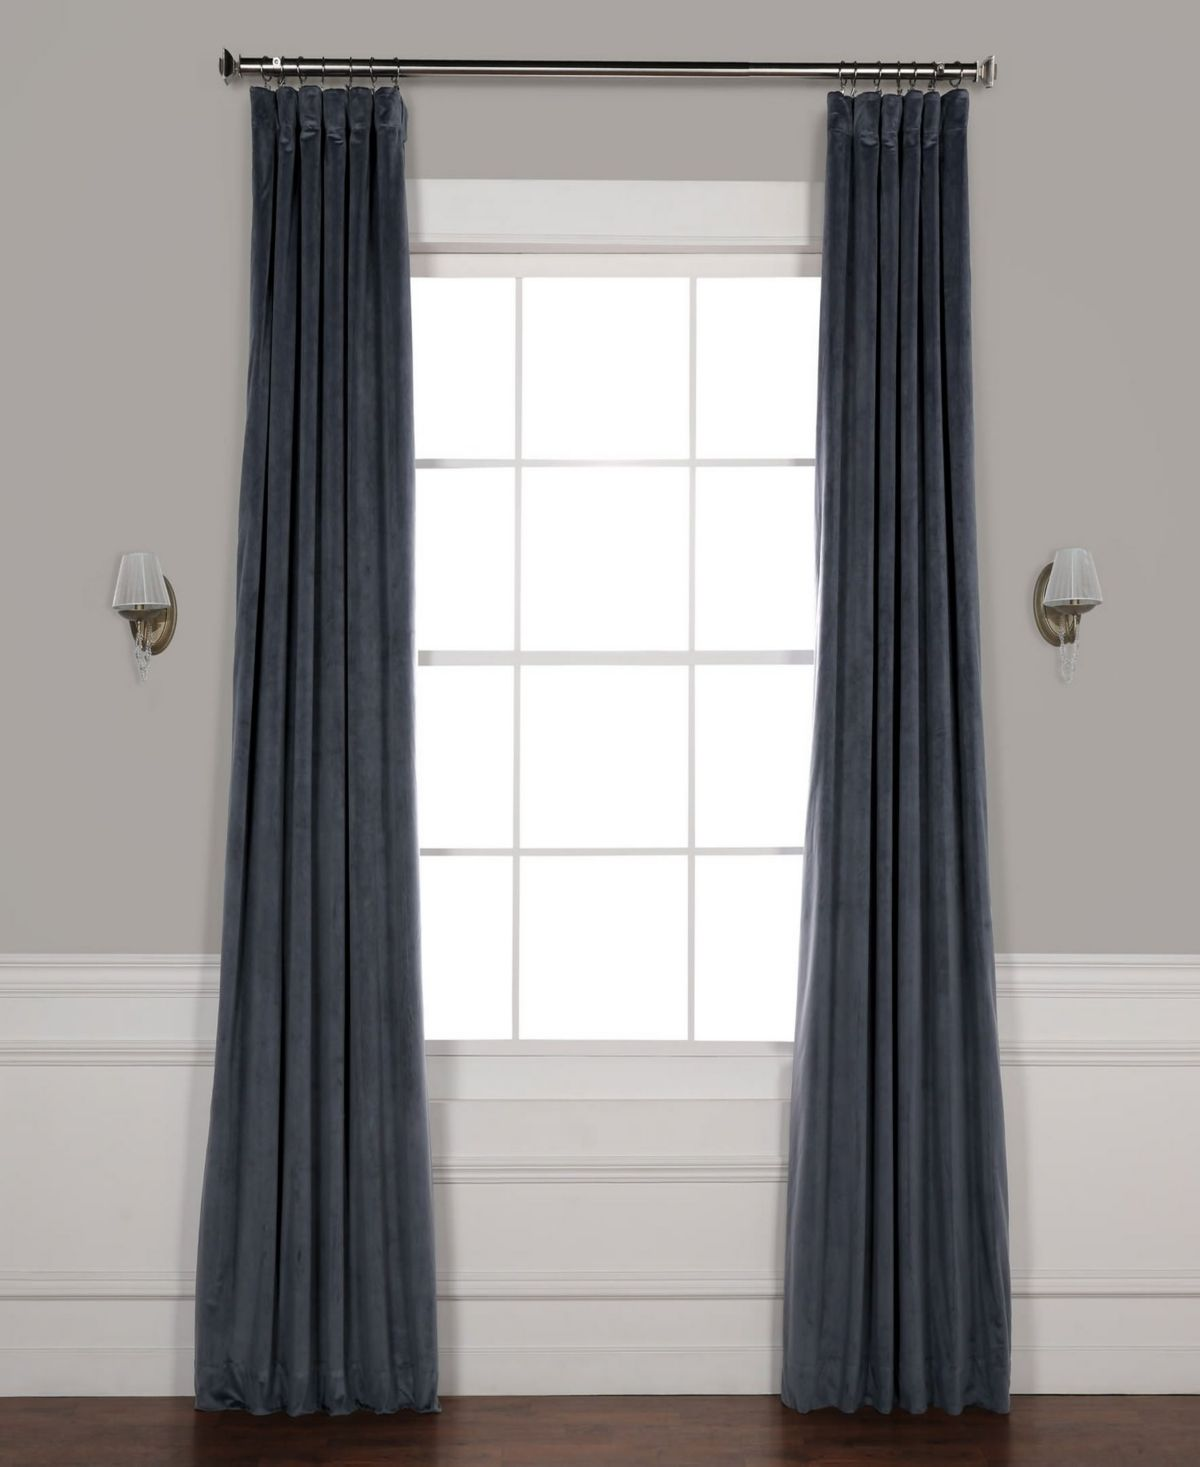 Exclusive Fabrics Furnishings Signature Blackout Velvet 50 X 120 Curtain Panel Reviews Window Treatments